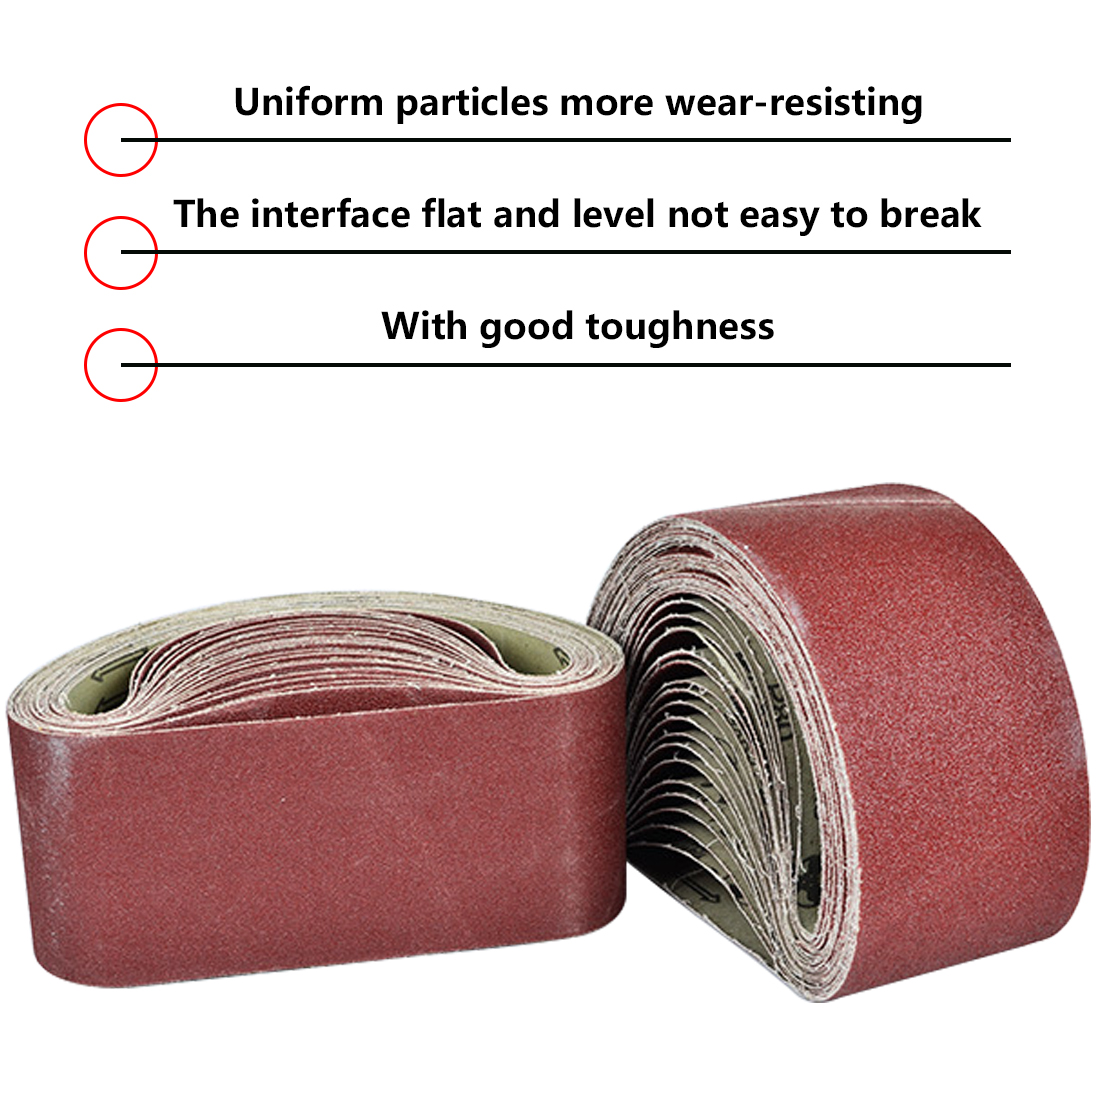 Search For Flights Sanding Belts 533x75mm 80-320 Grits Sandpaper Abrasive Bands For Sander Power Rotary Tools Dremel Accessories Abrasive Tool Demand Exceeding Supply Tools